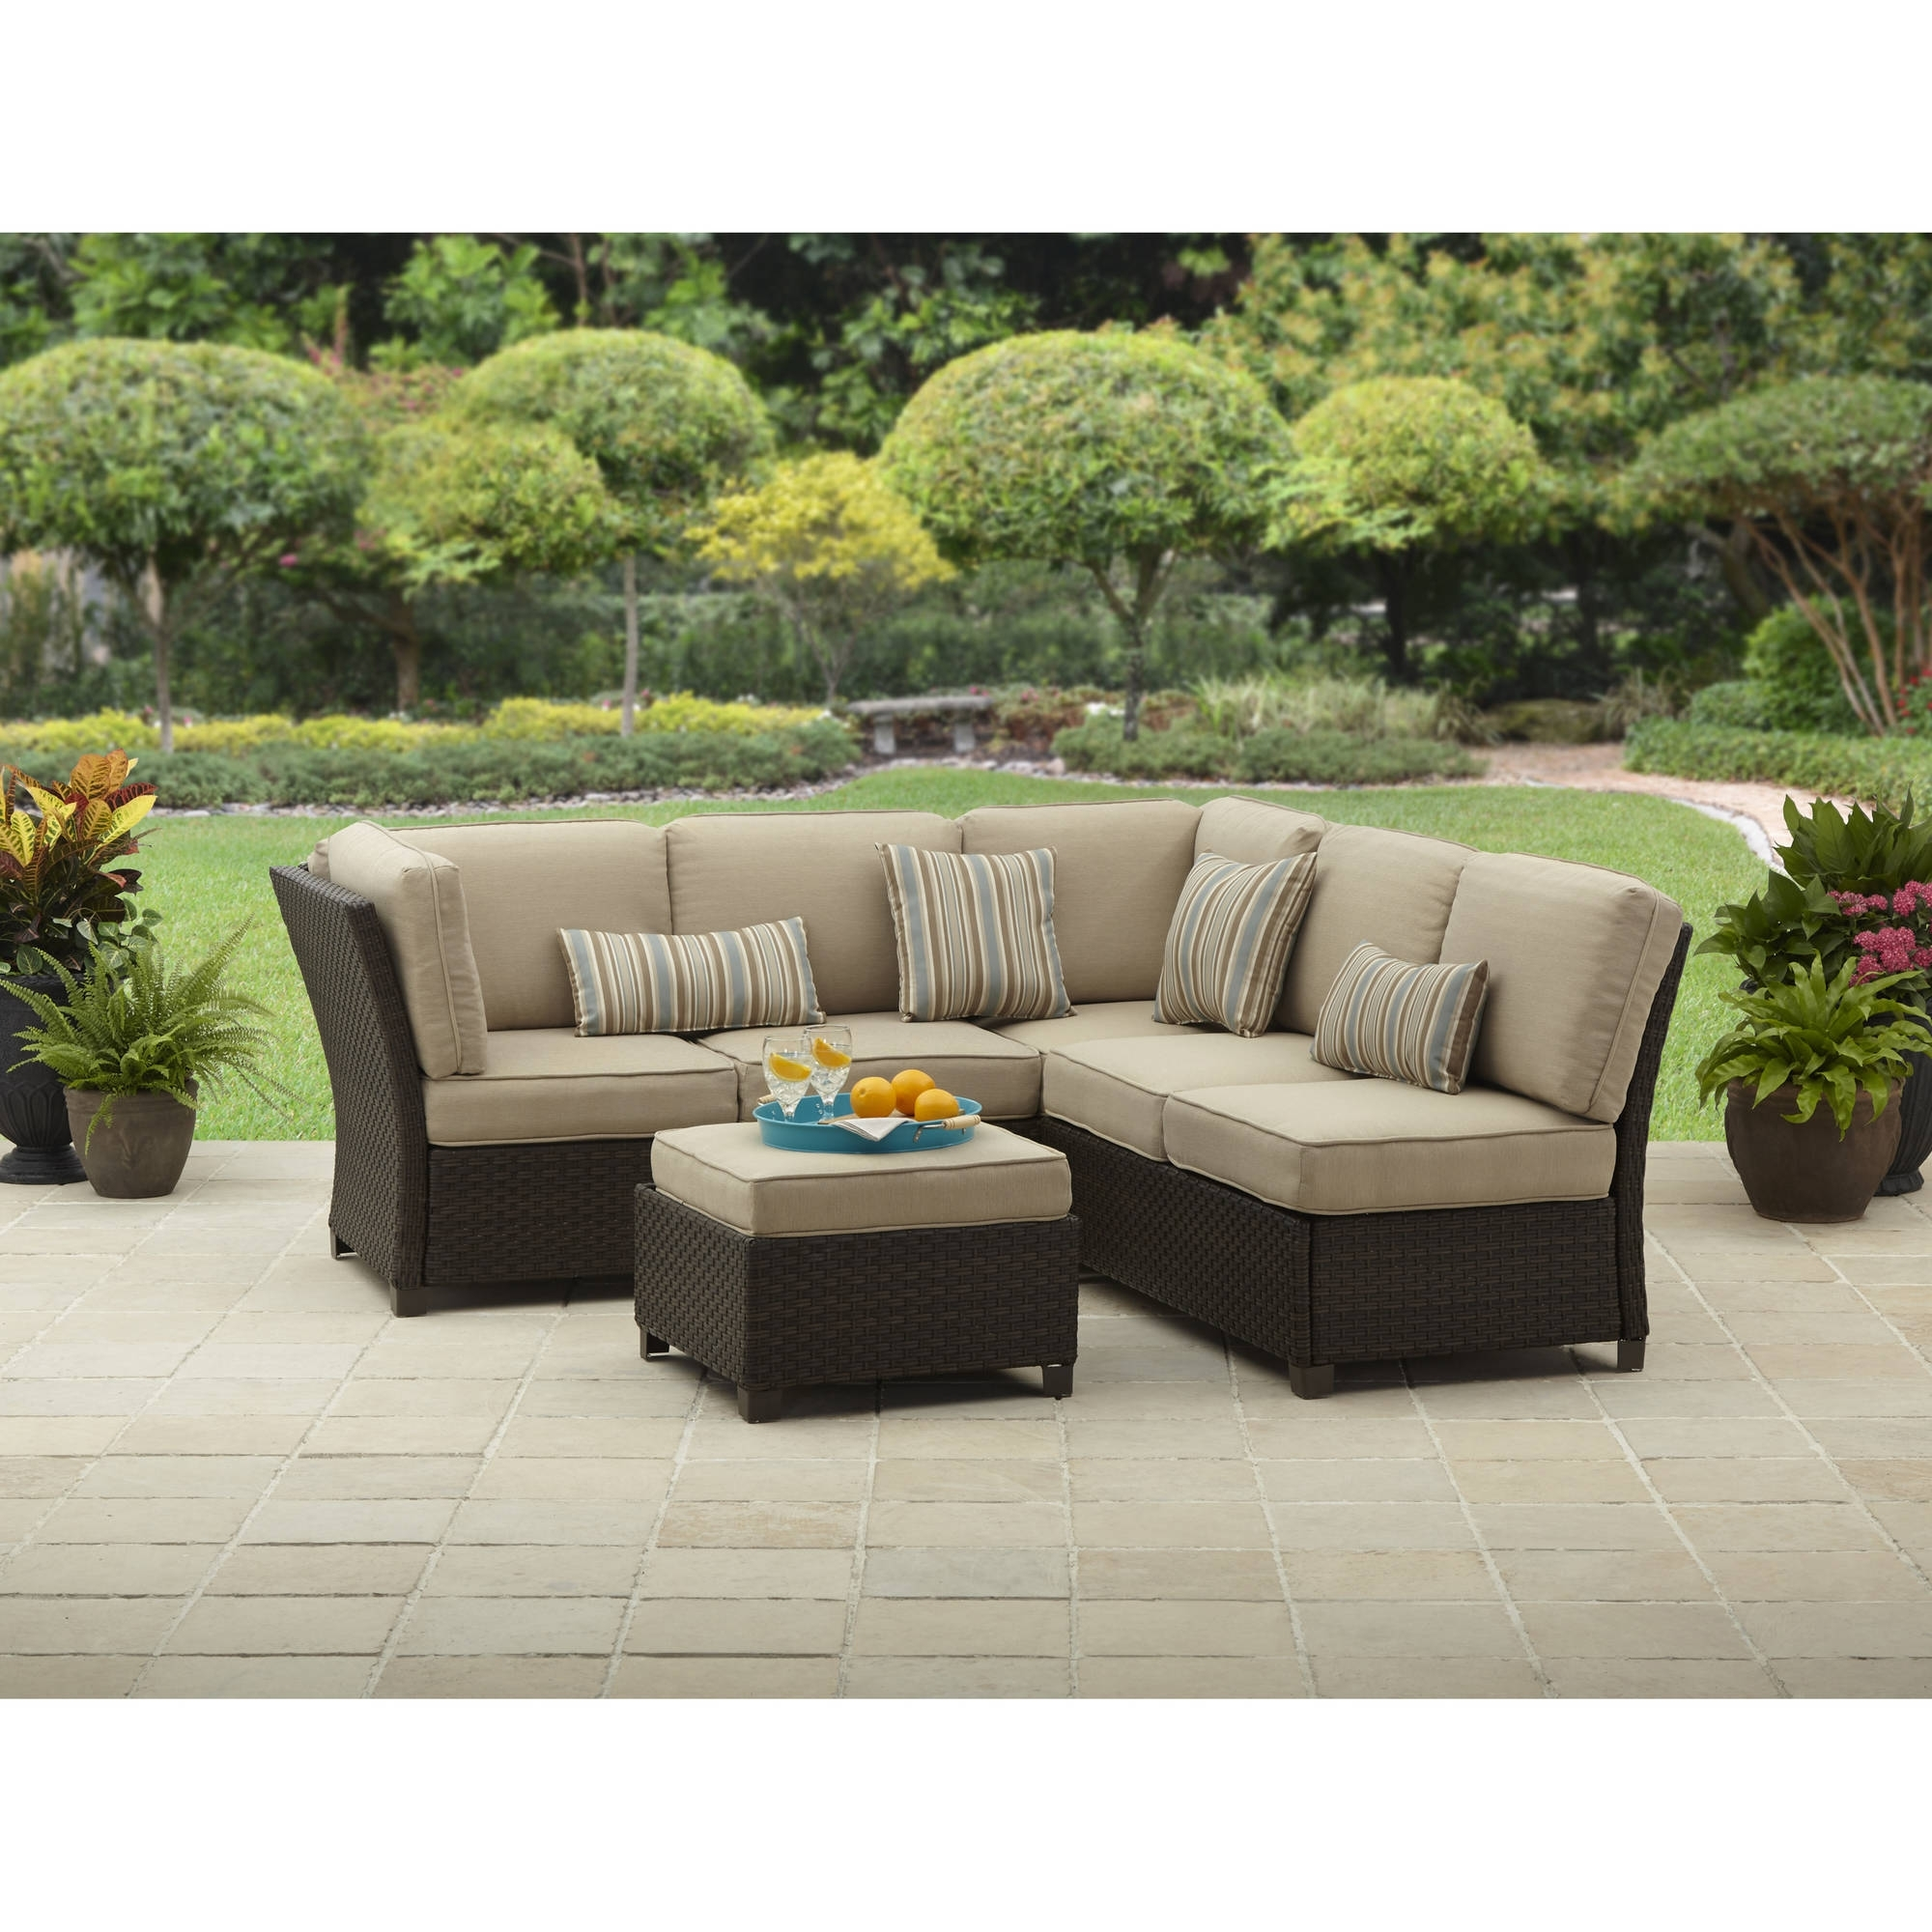 Better Homes And Gardens Cadence Wicker Outdoor Sectional Sofa Set Regarding Sectional Sofas At Walmart (View 8 of 10)